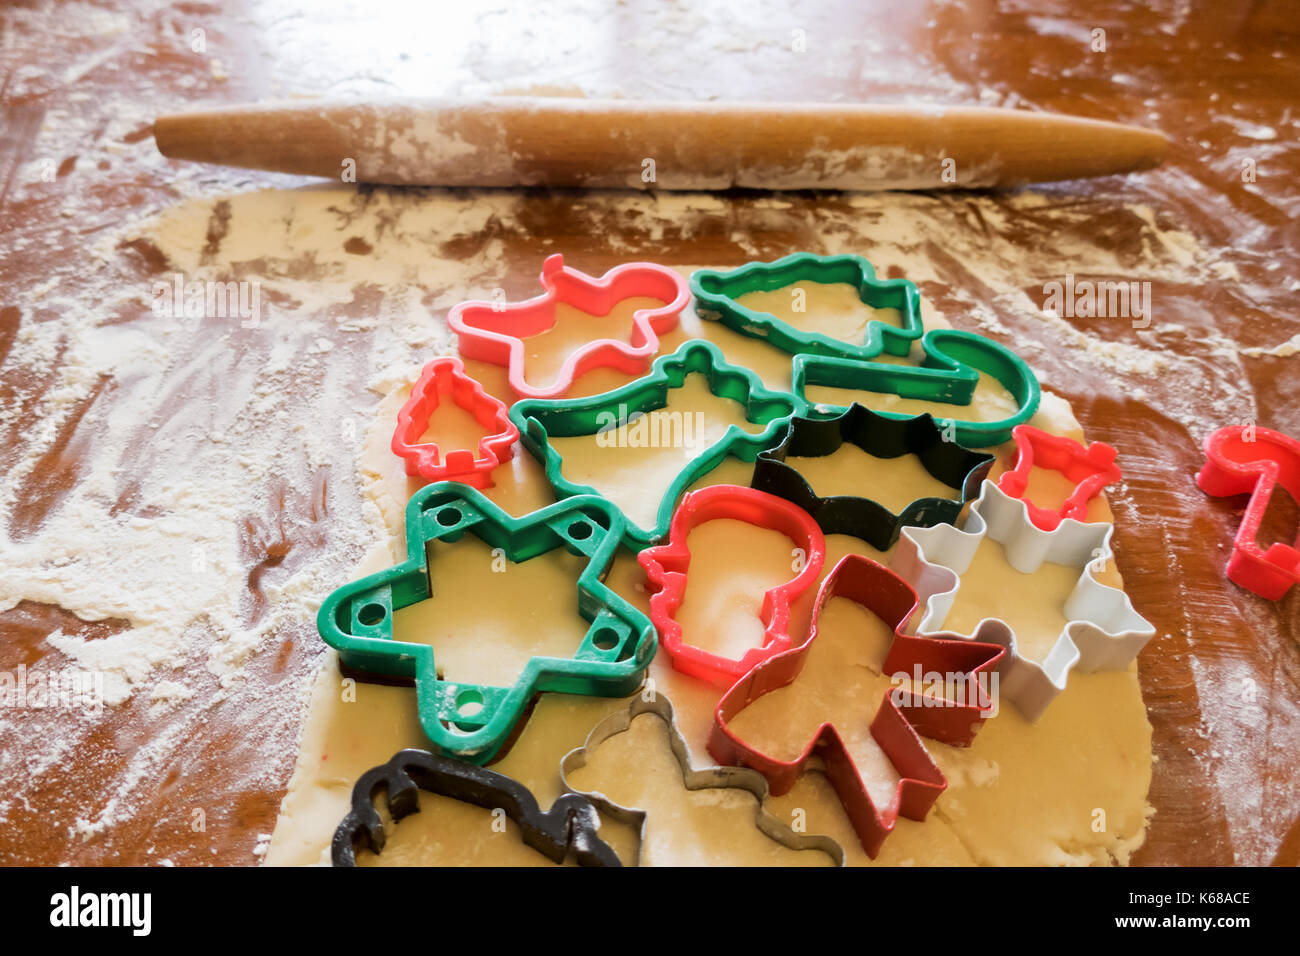 Christmas Cookie Cutters Stuck Into Sugar Cookie Dough On A Flowered